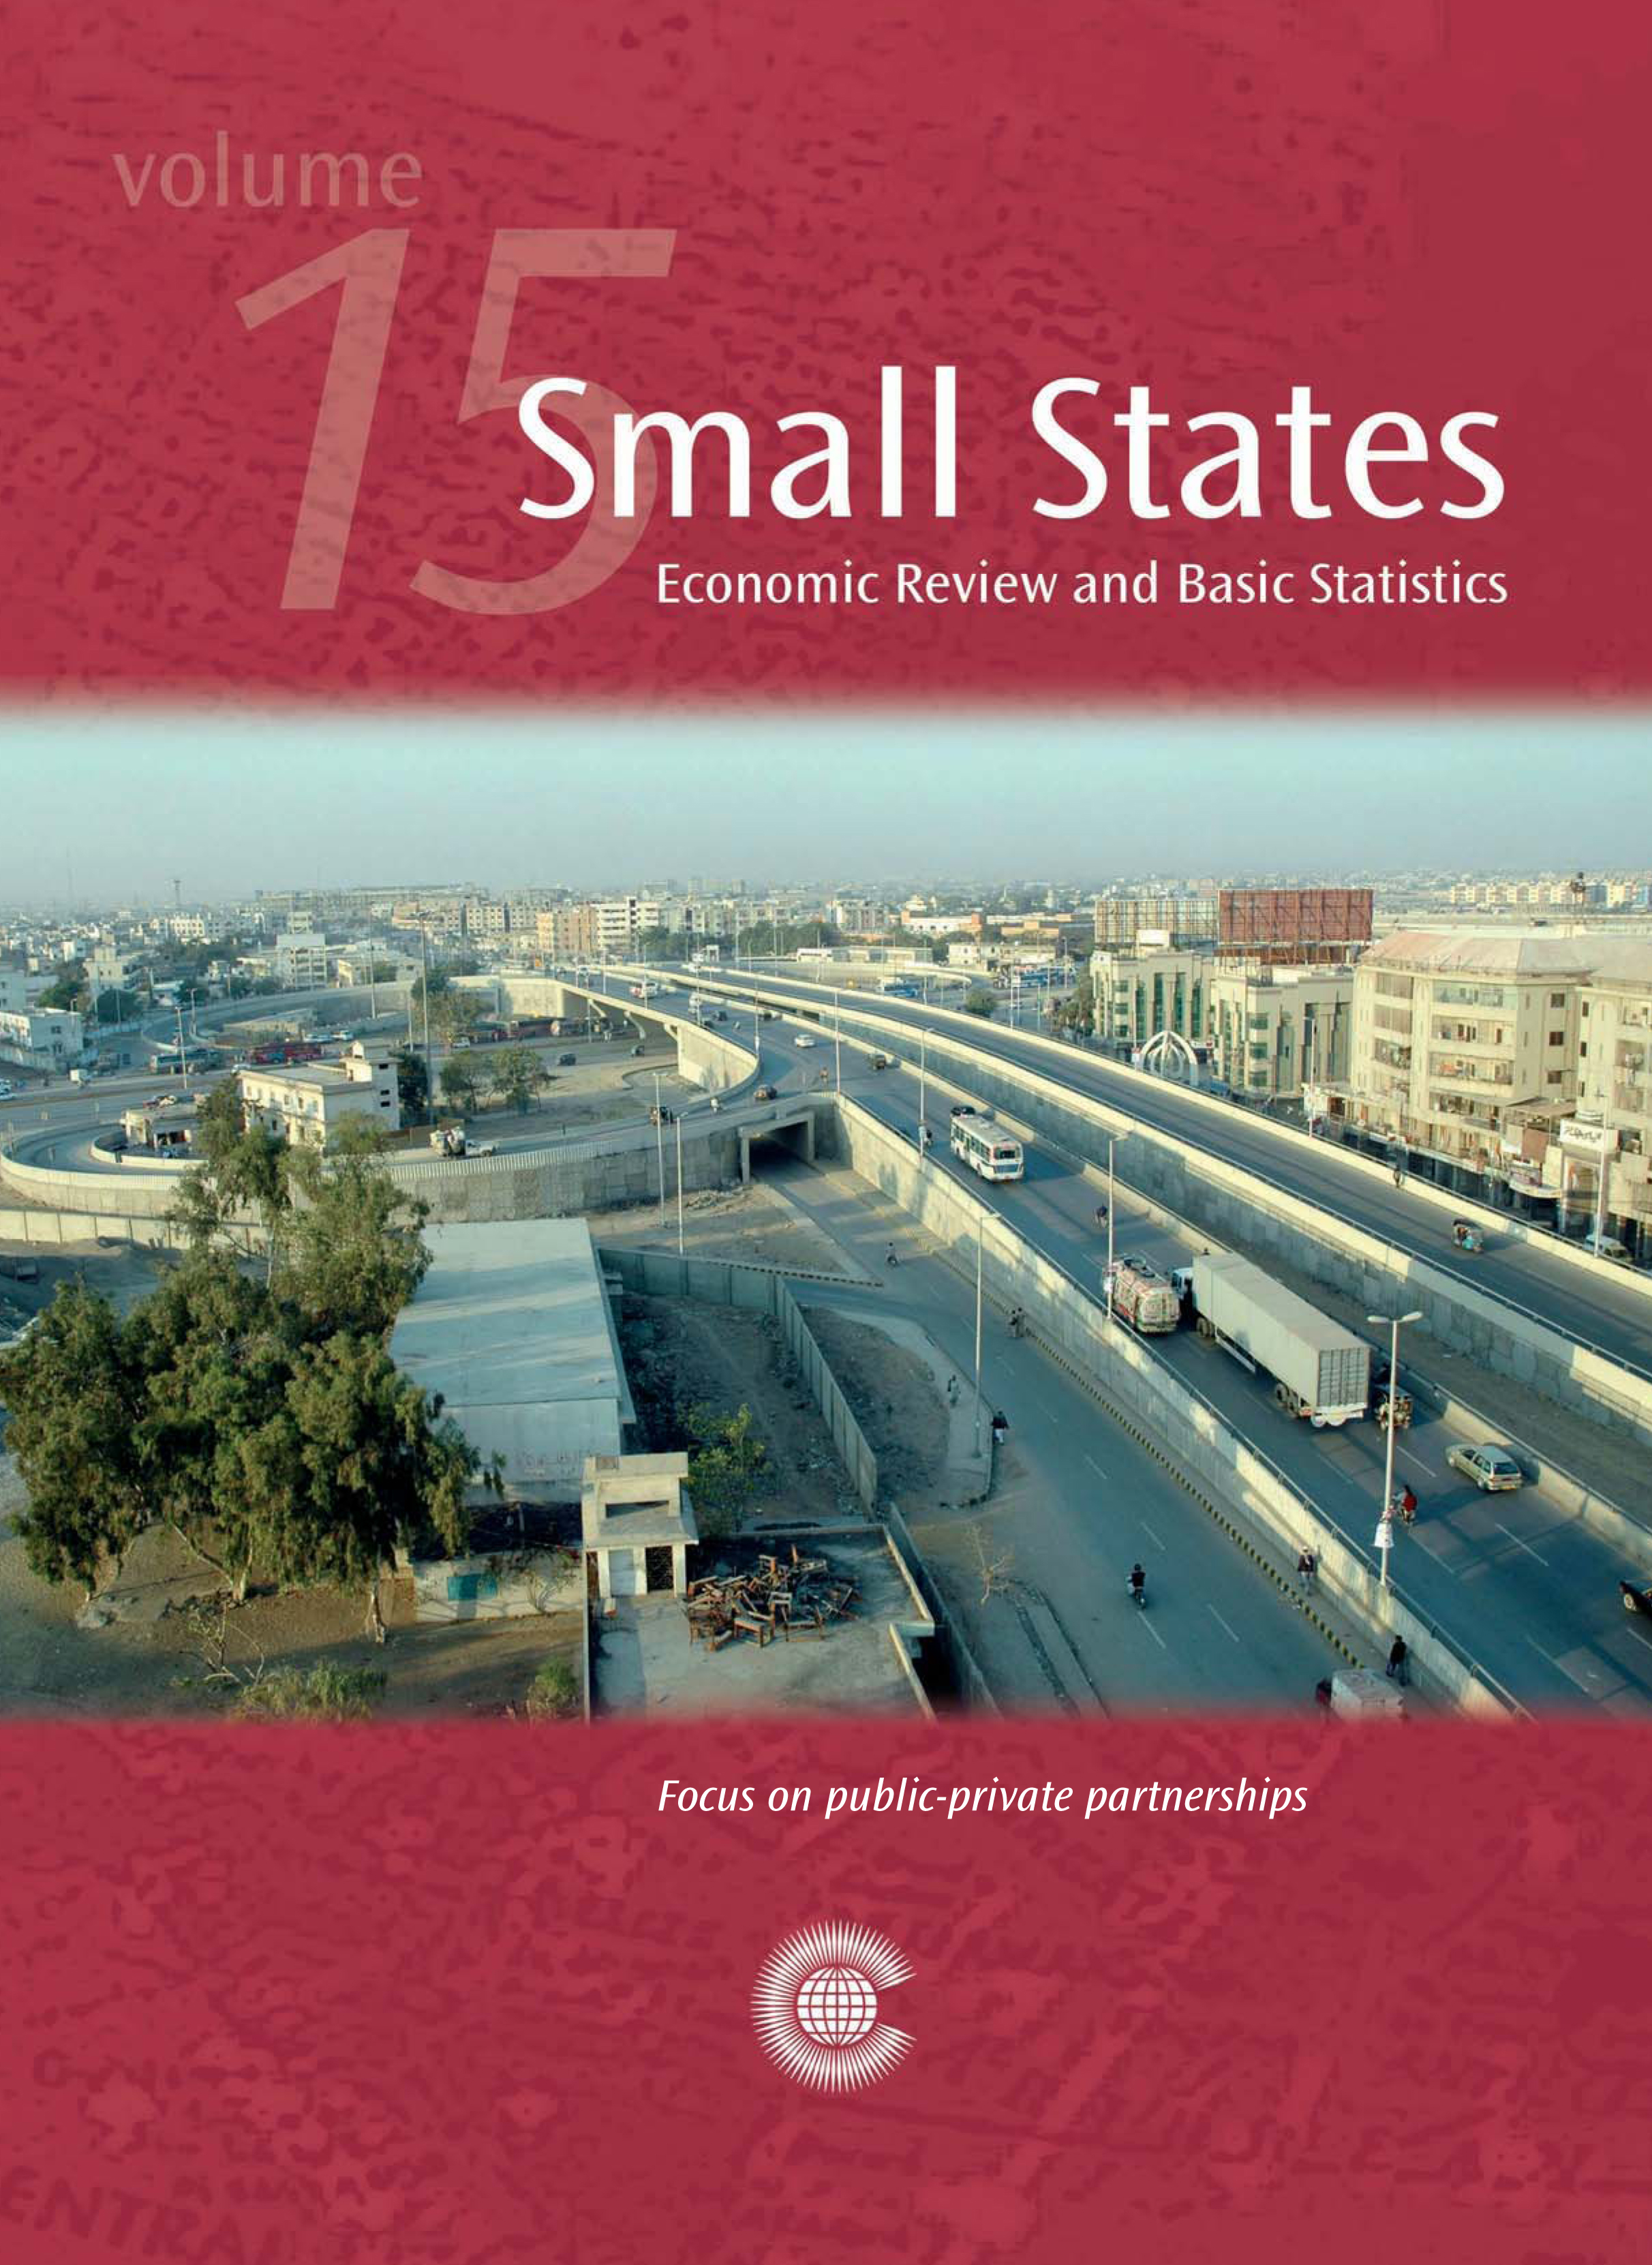 book review economy and state a In 'chinese economic statecraft: commercial actors, grand strategy and state control,' william j norris examines how states use economic tools to pursue.